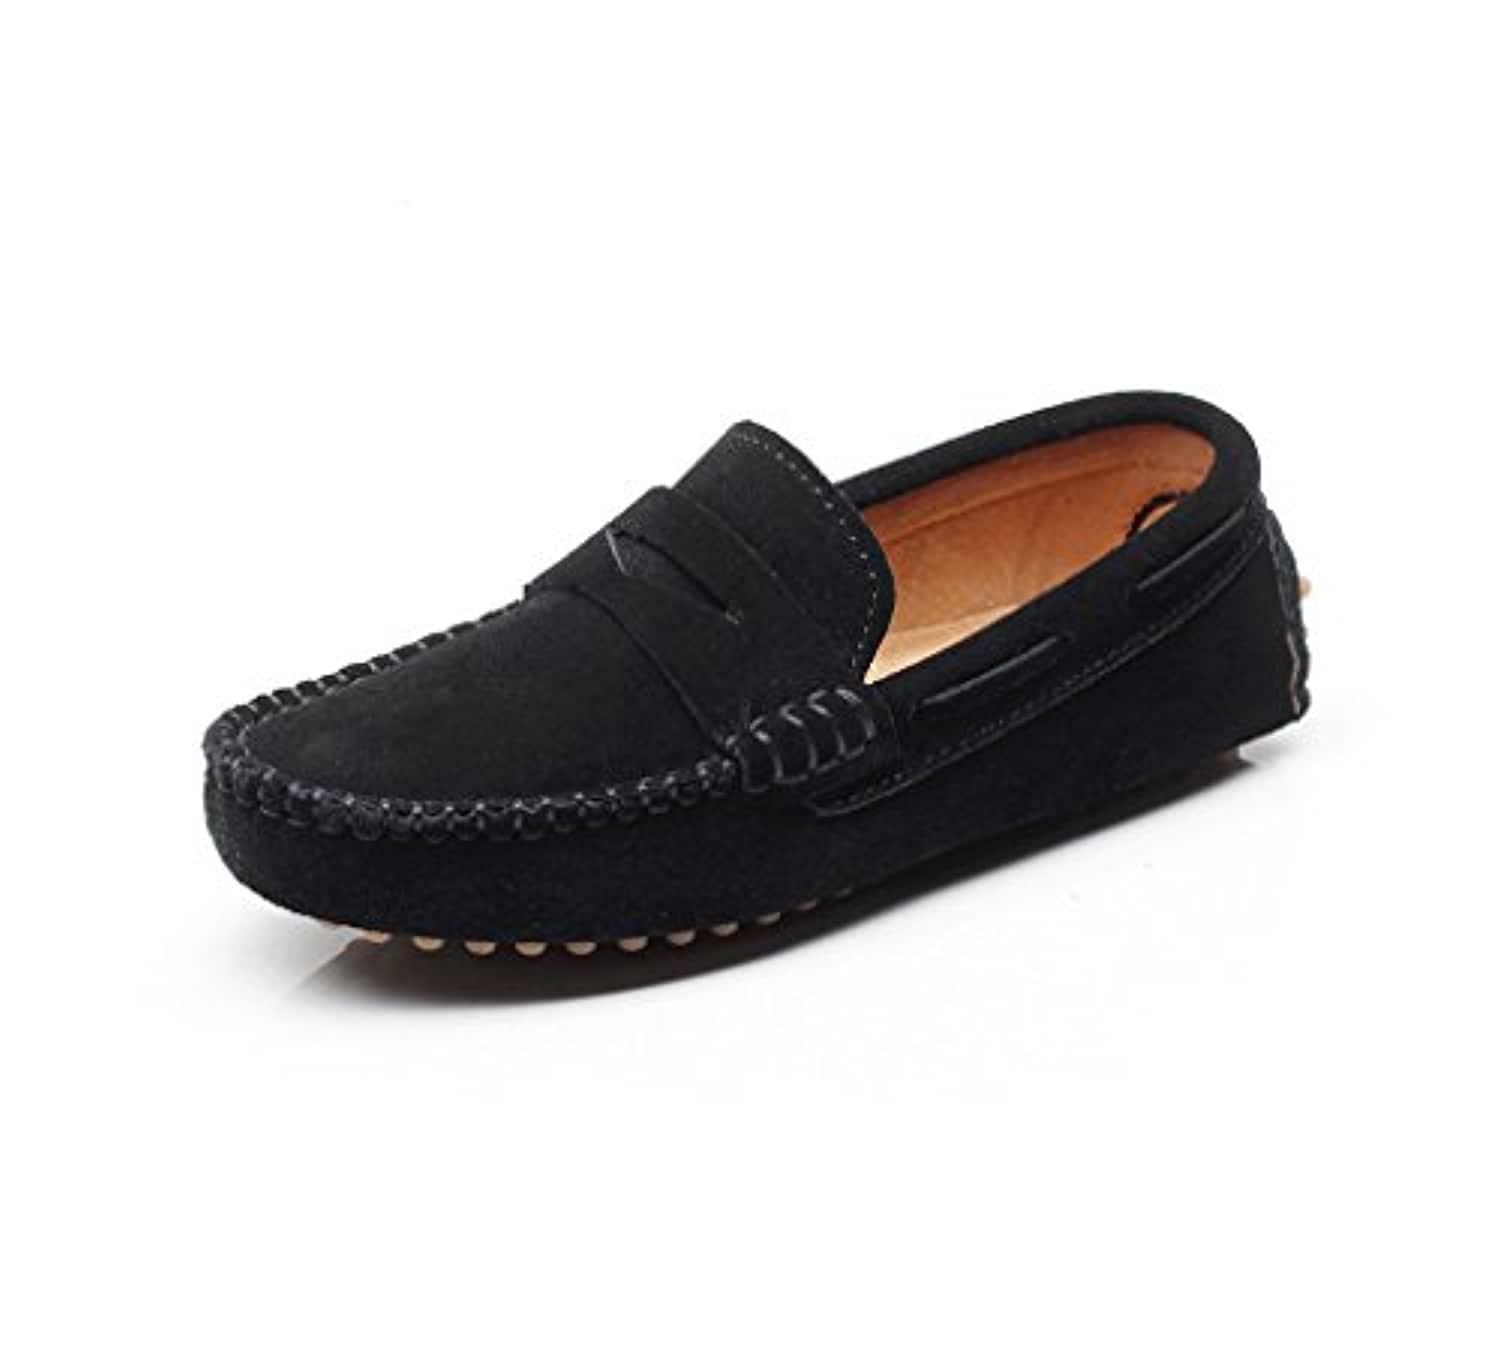 Shenn Boys' Cute Slip-On Suede Leather Loafers Shoes(Black,2 Child UK)